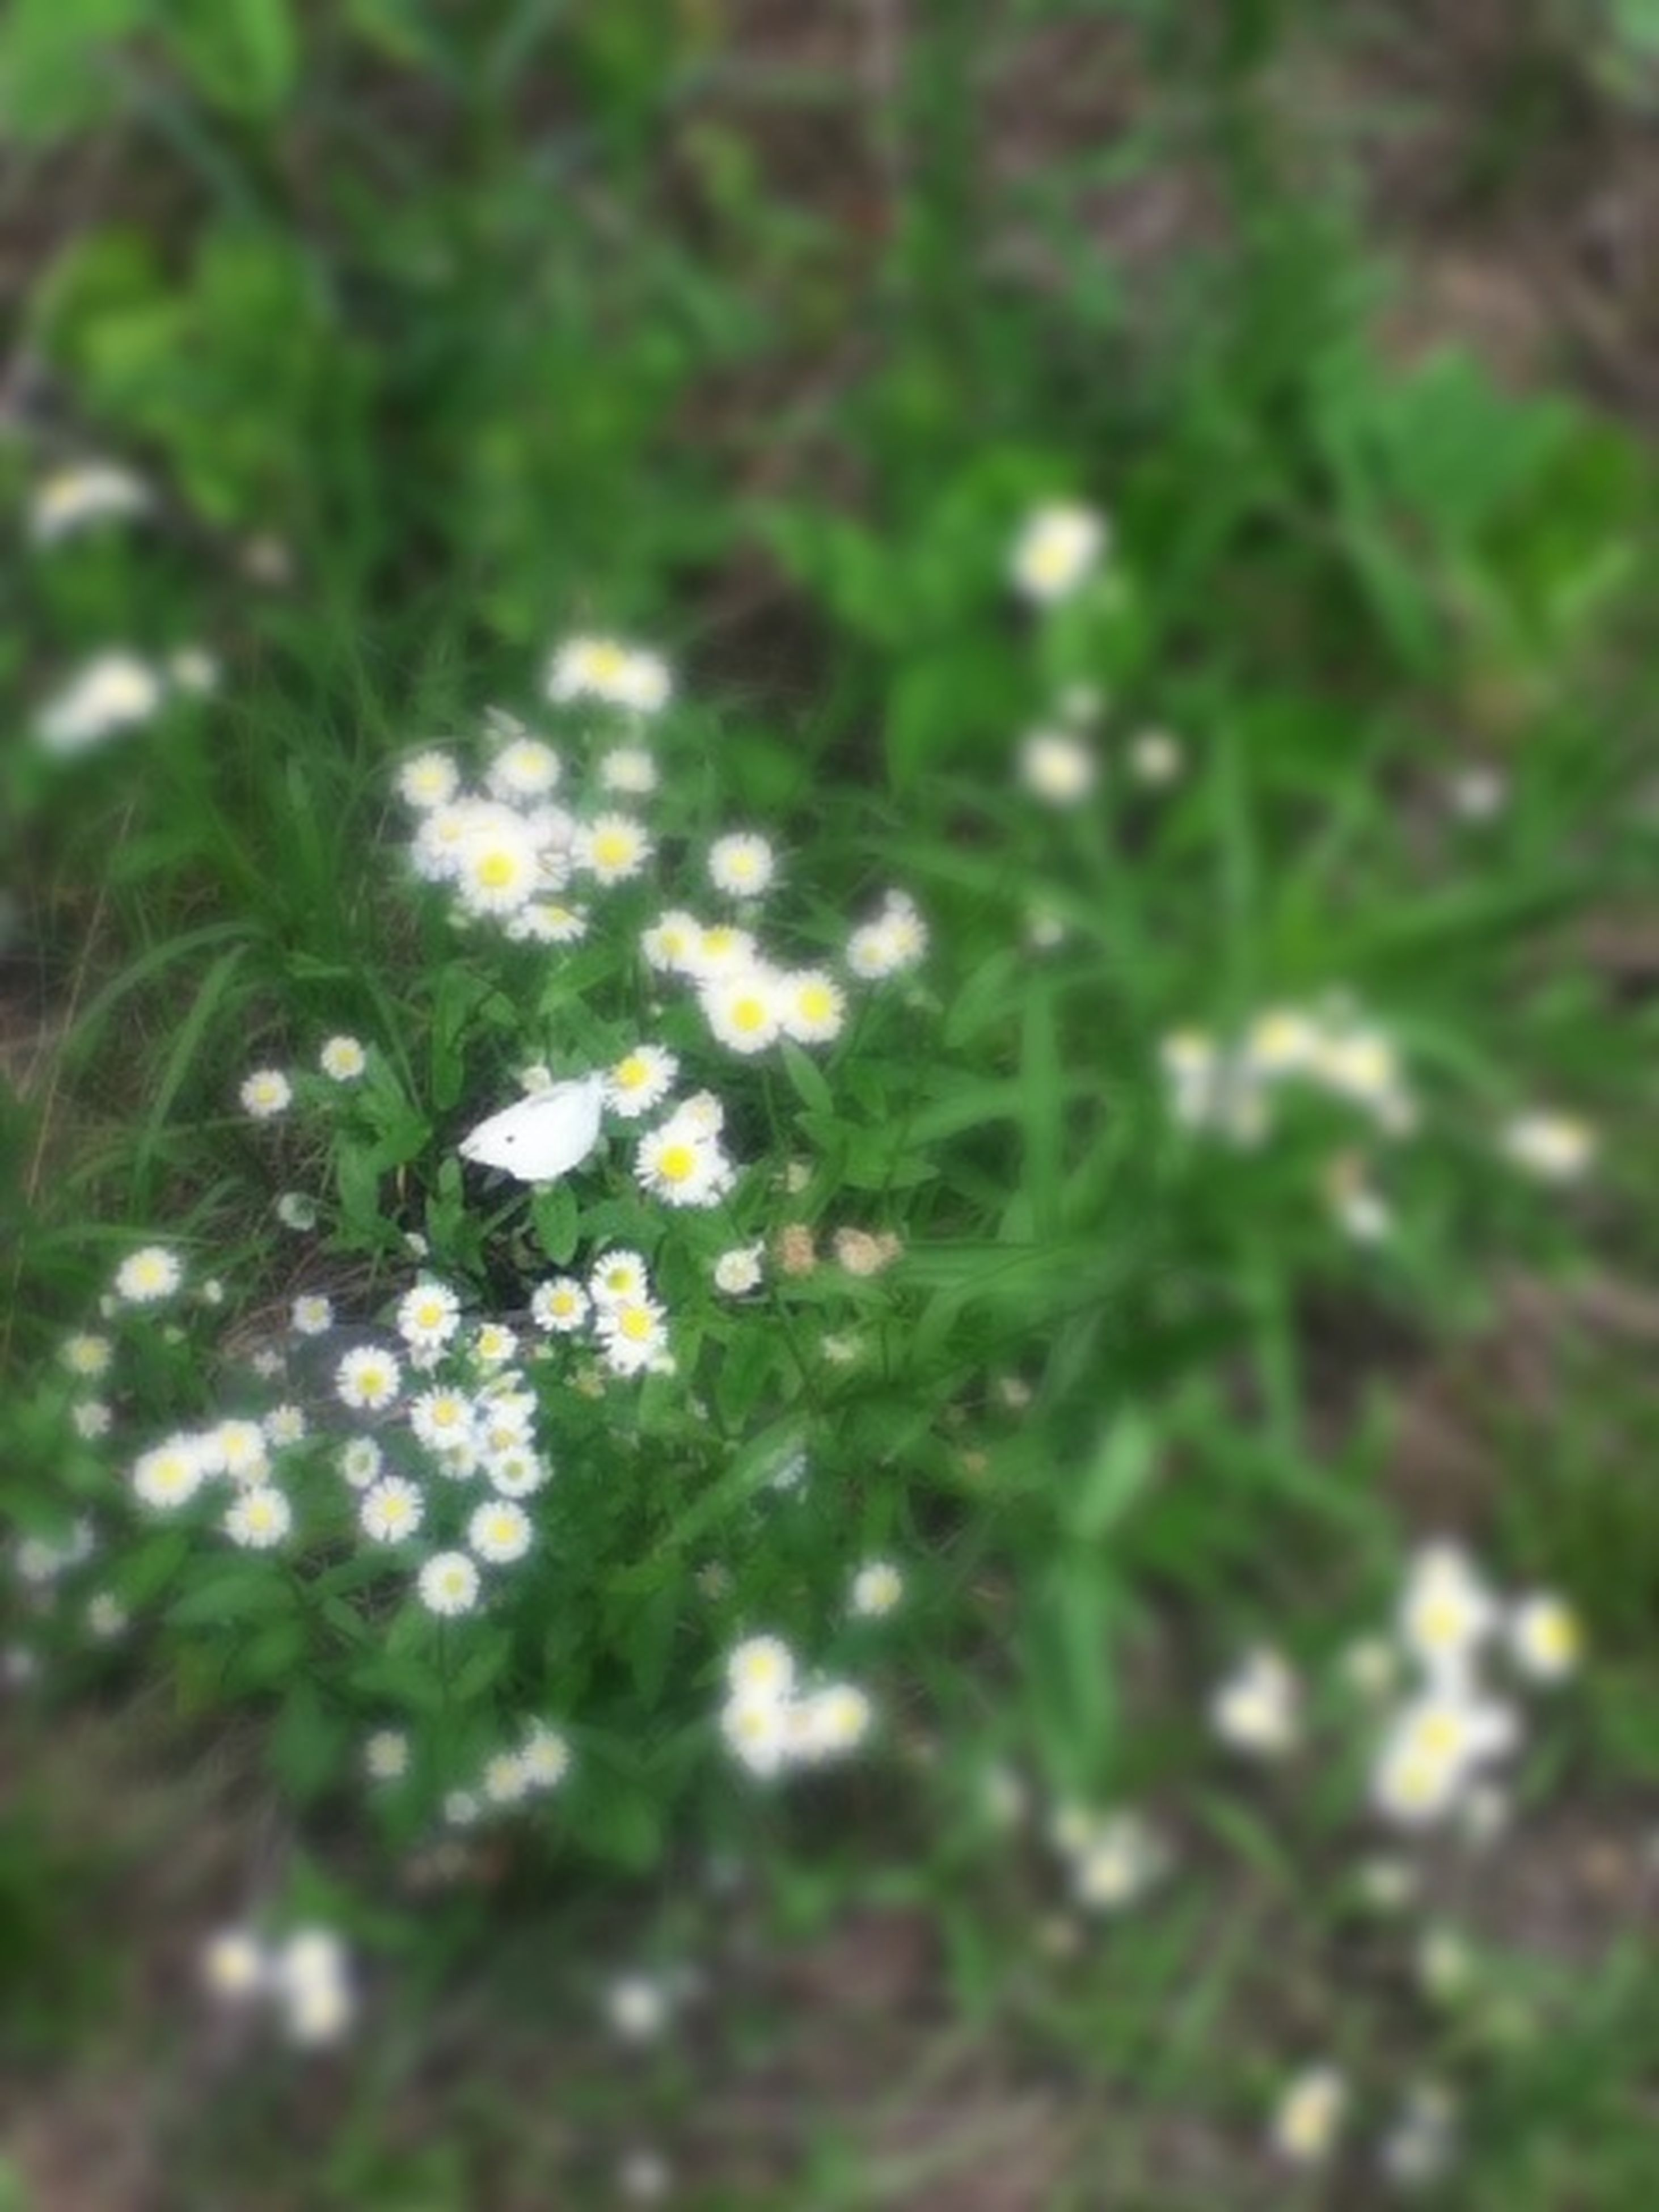 flower, growth, freshness, white color, fragility, beauty in nature, petal, flower head, nature, plant, blooming, field, close-up, focus on foreground, white, selective focus, in bloom, green color, wildflower, day